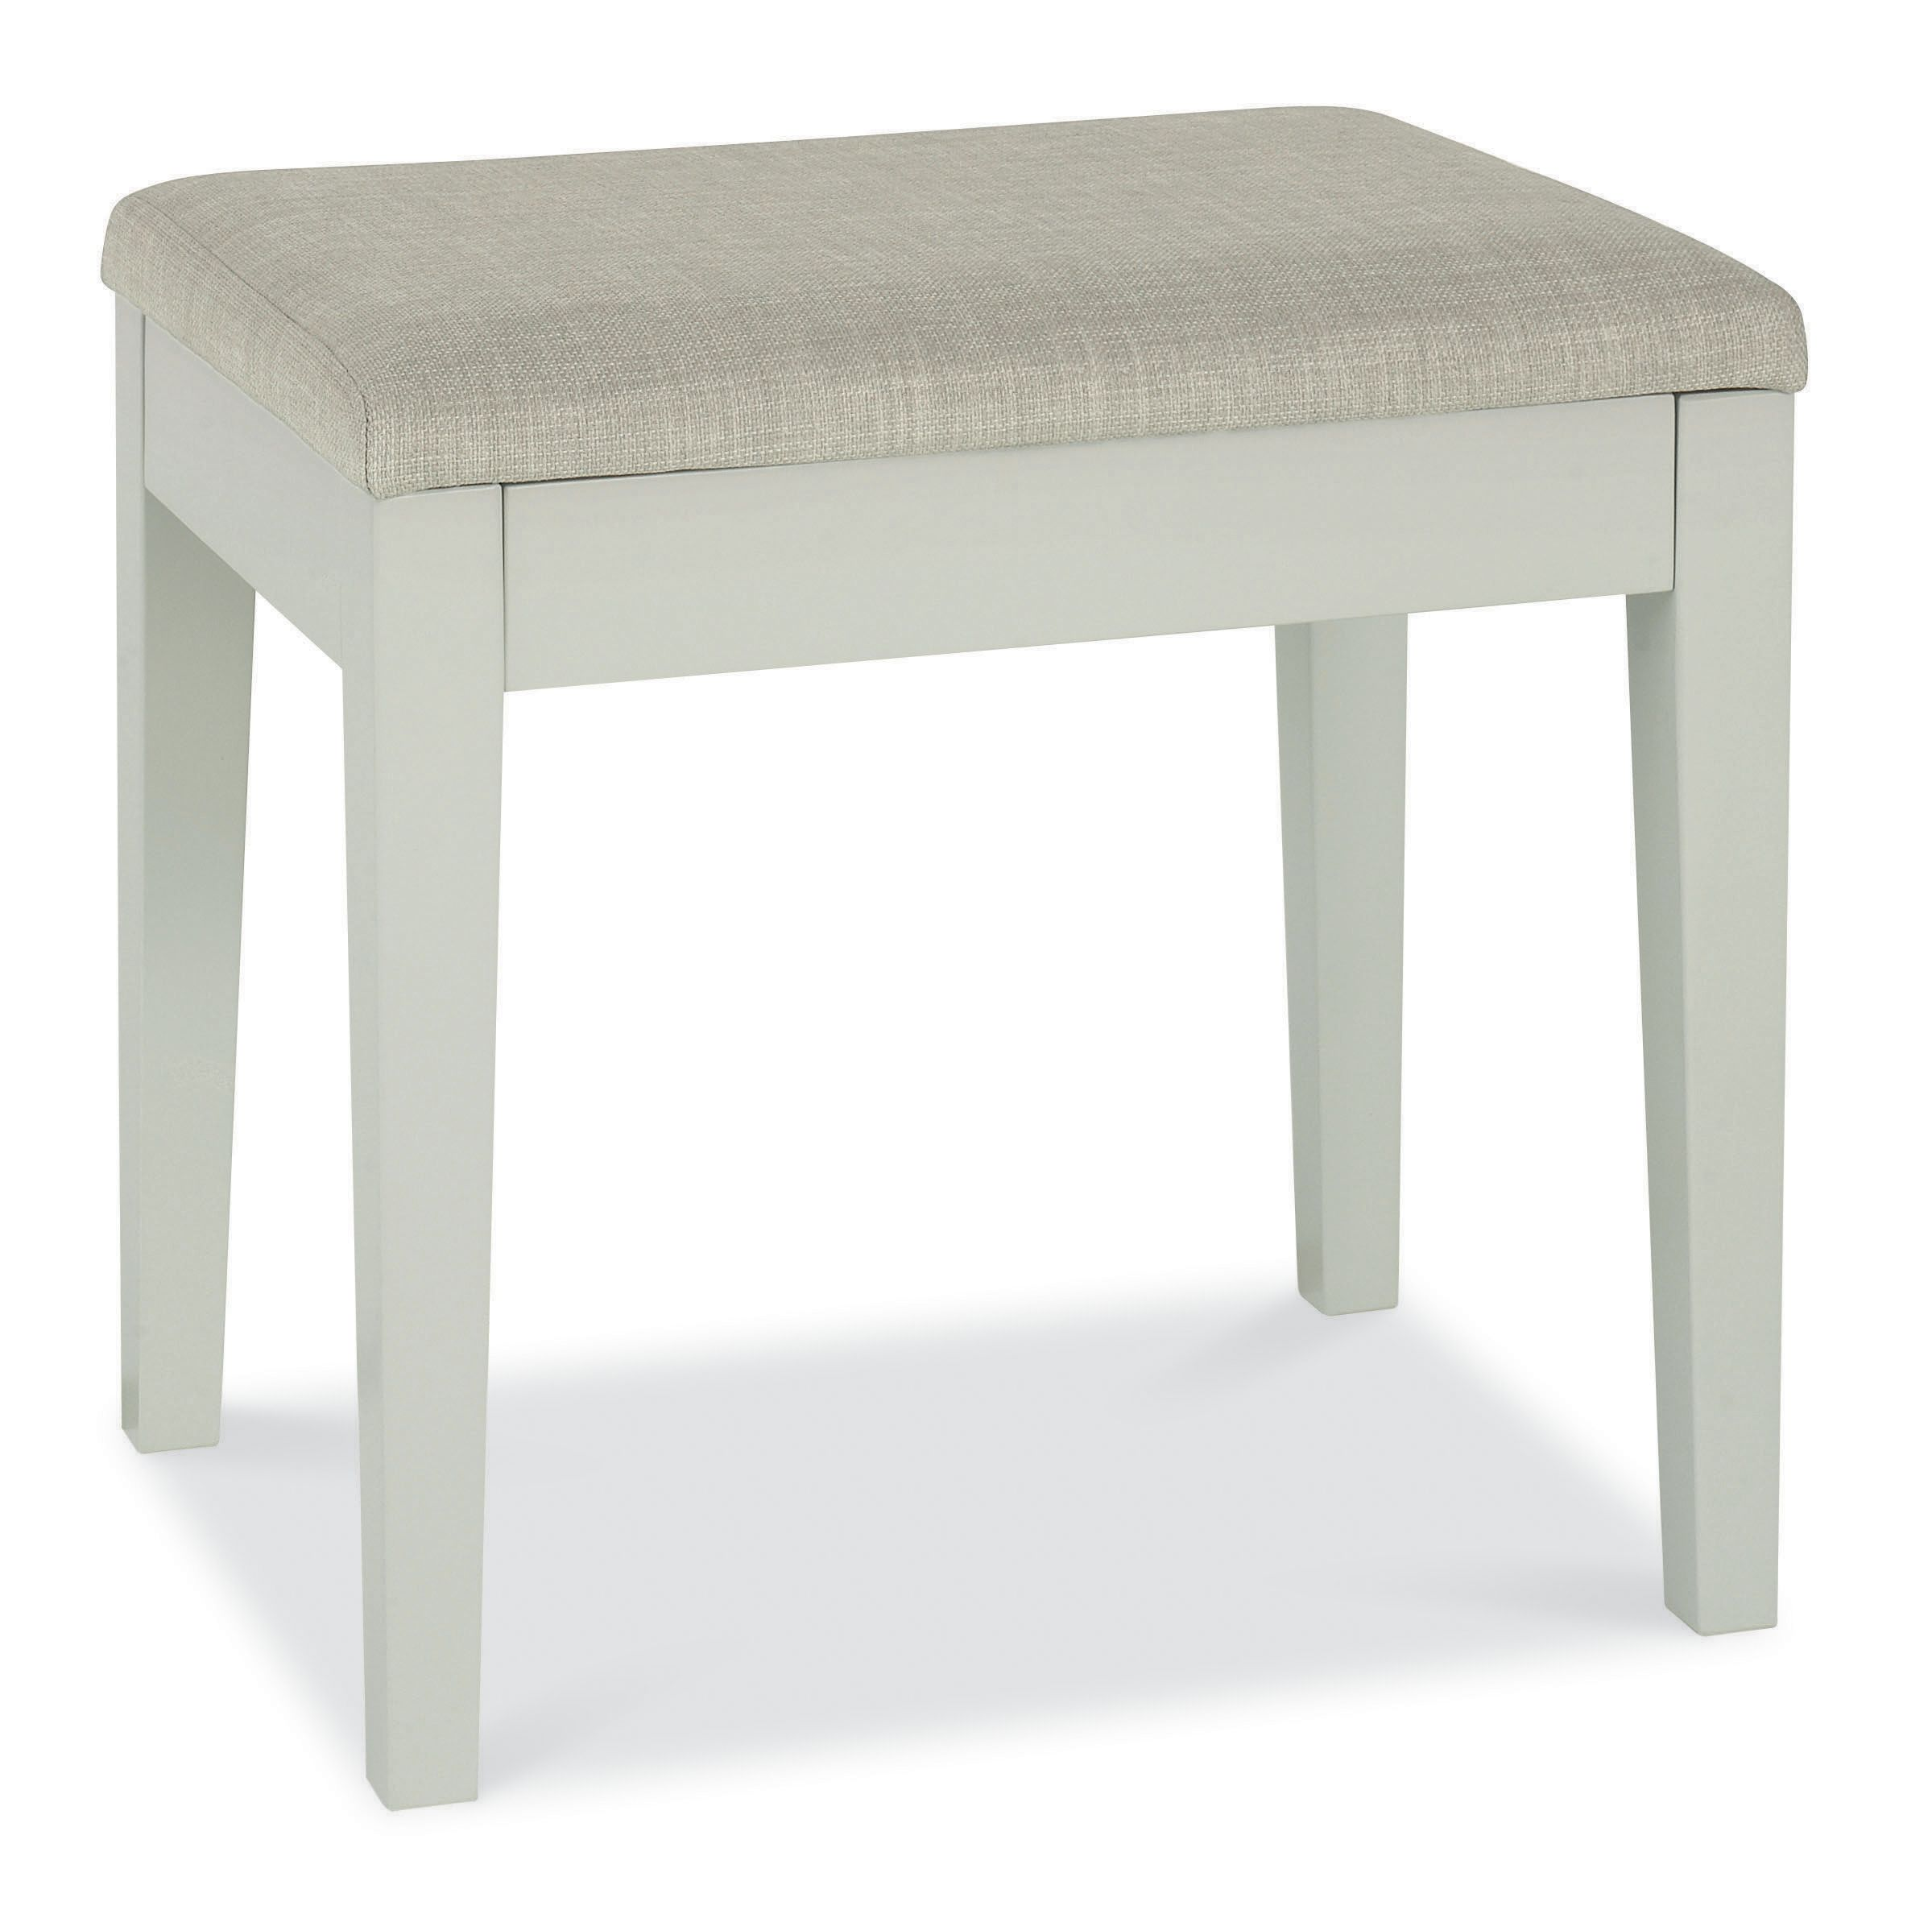 Cotton stool